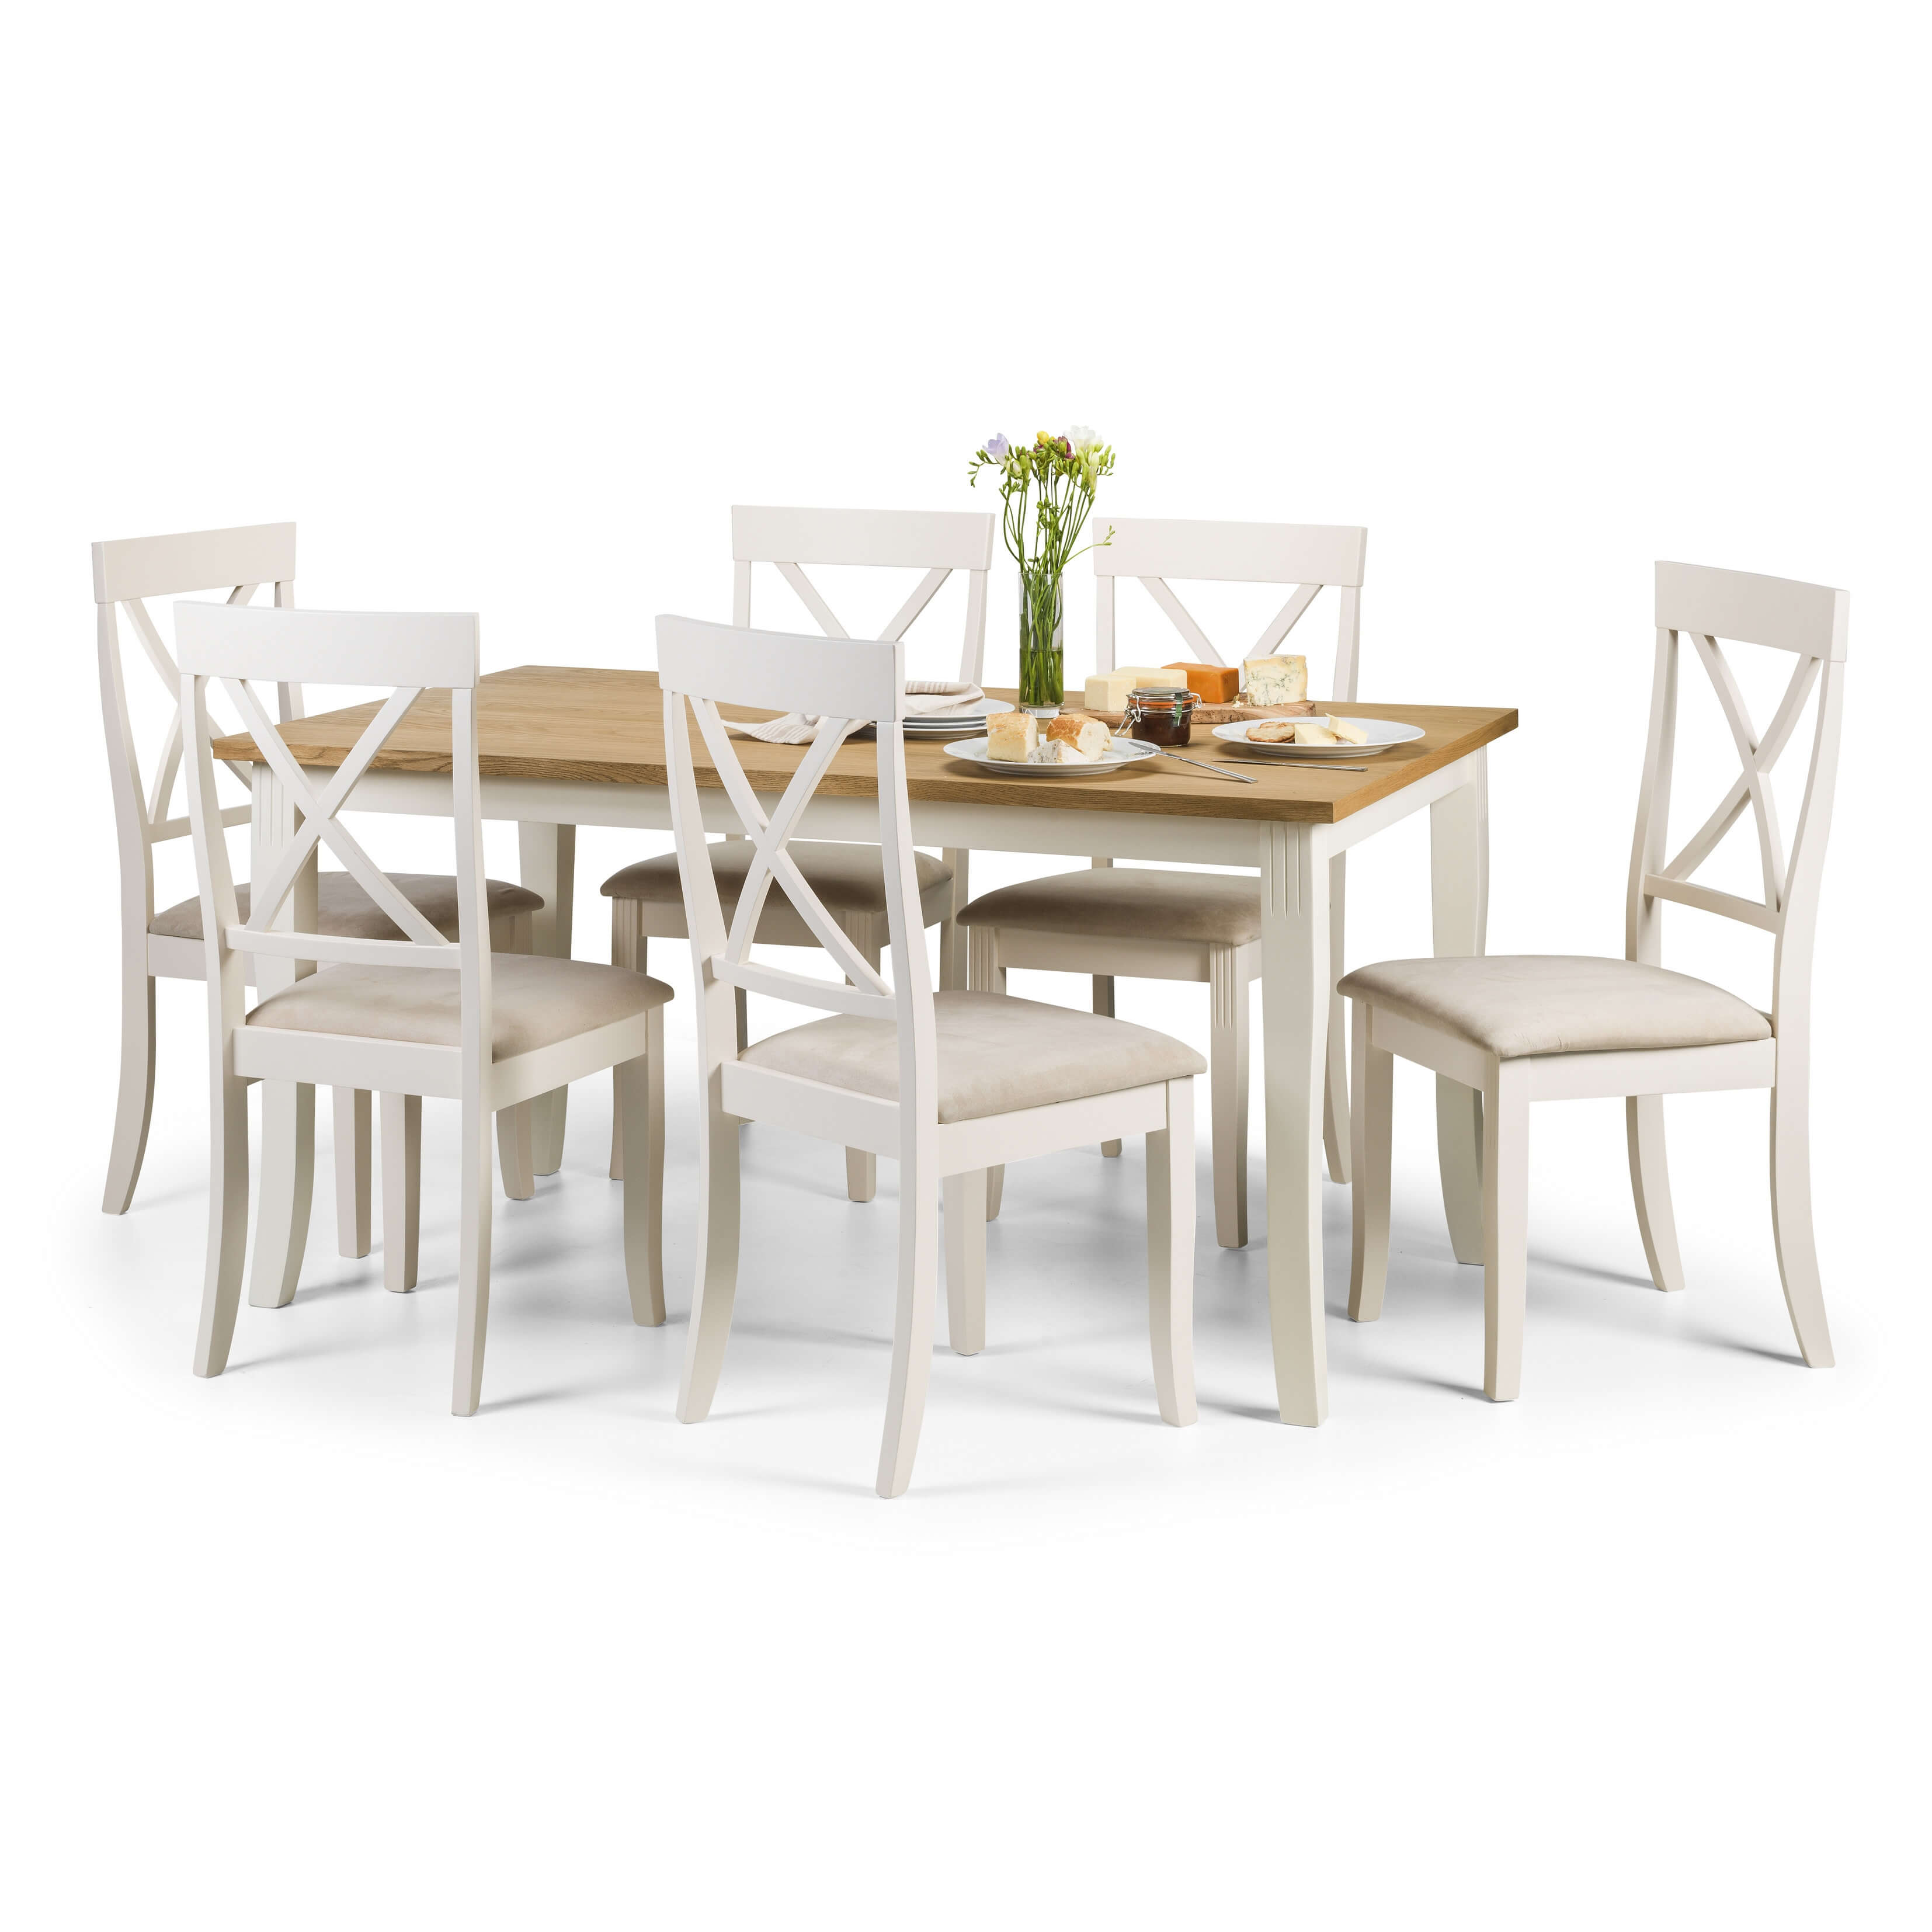 https://www.firstfurniture.co.uk/pub/media/catalog/product/d/a/davenport-dining-table-and-6-davenport-chairs-dav005.jpg